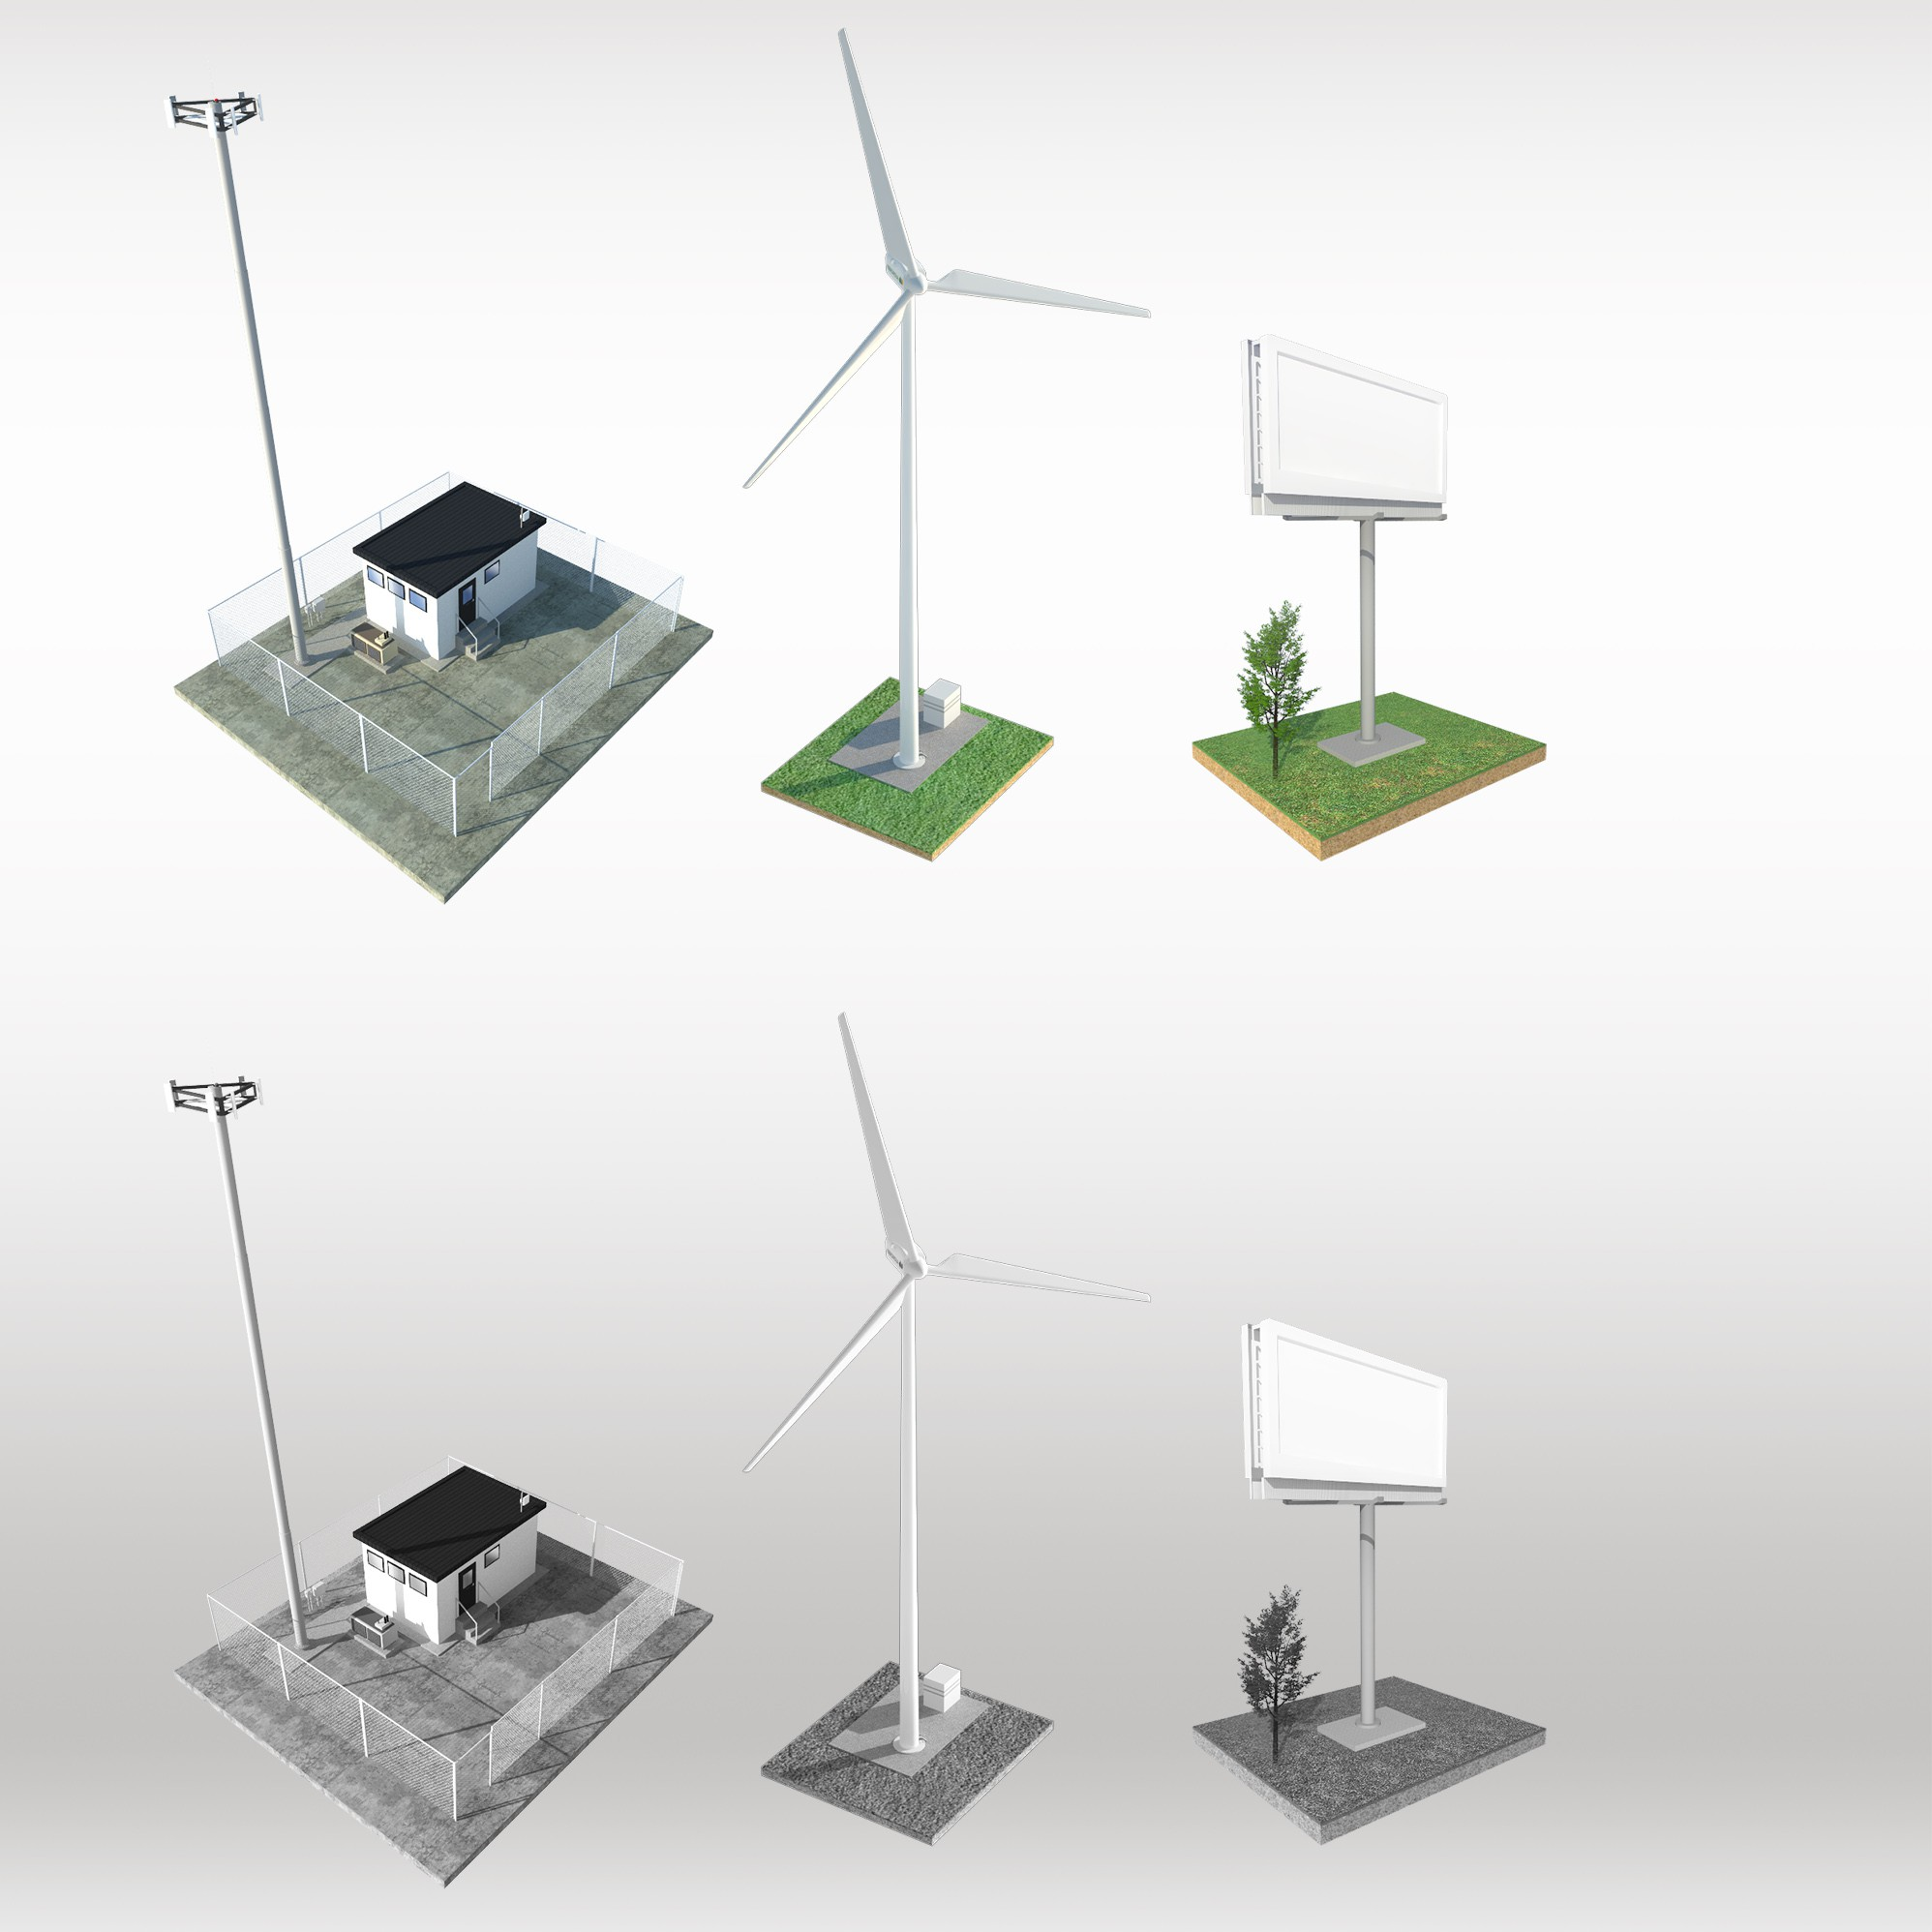 Create 3 Grey-Scale Graphics (Billboard, Cell Tower and Wind Turbine) for inclusion in a document